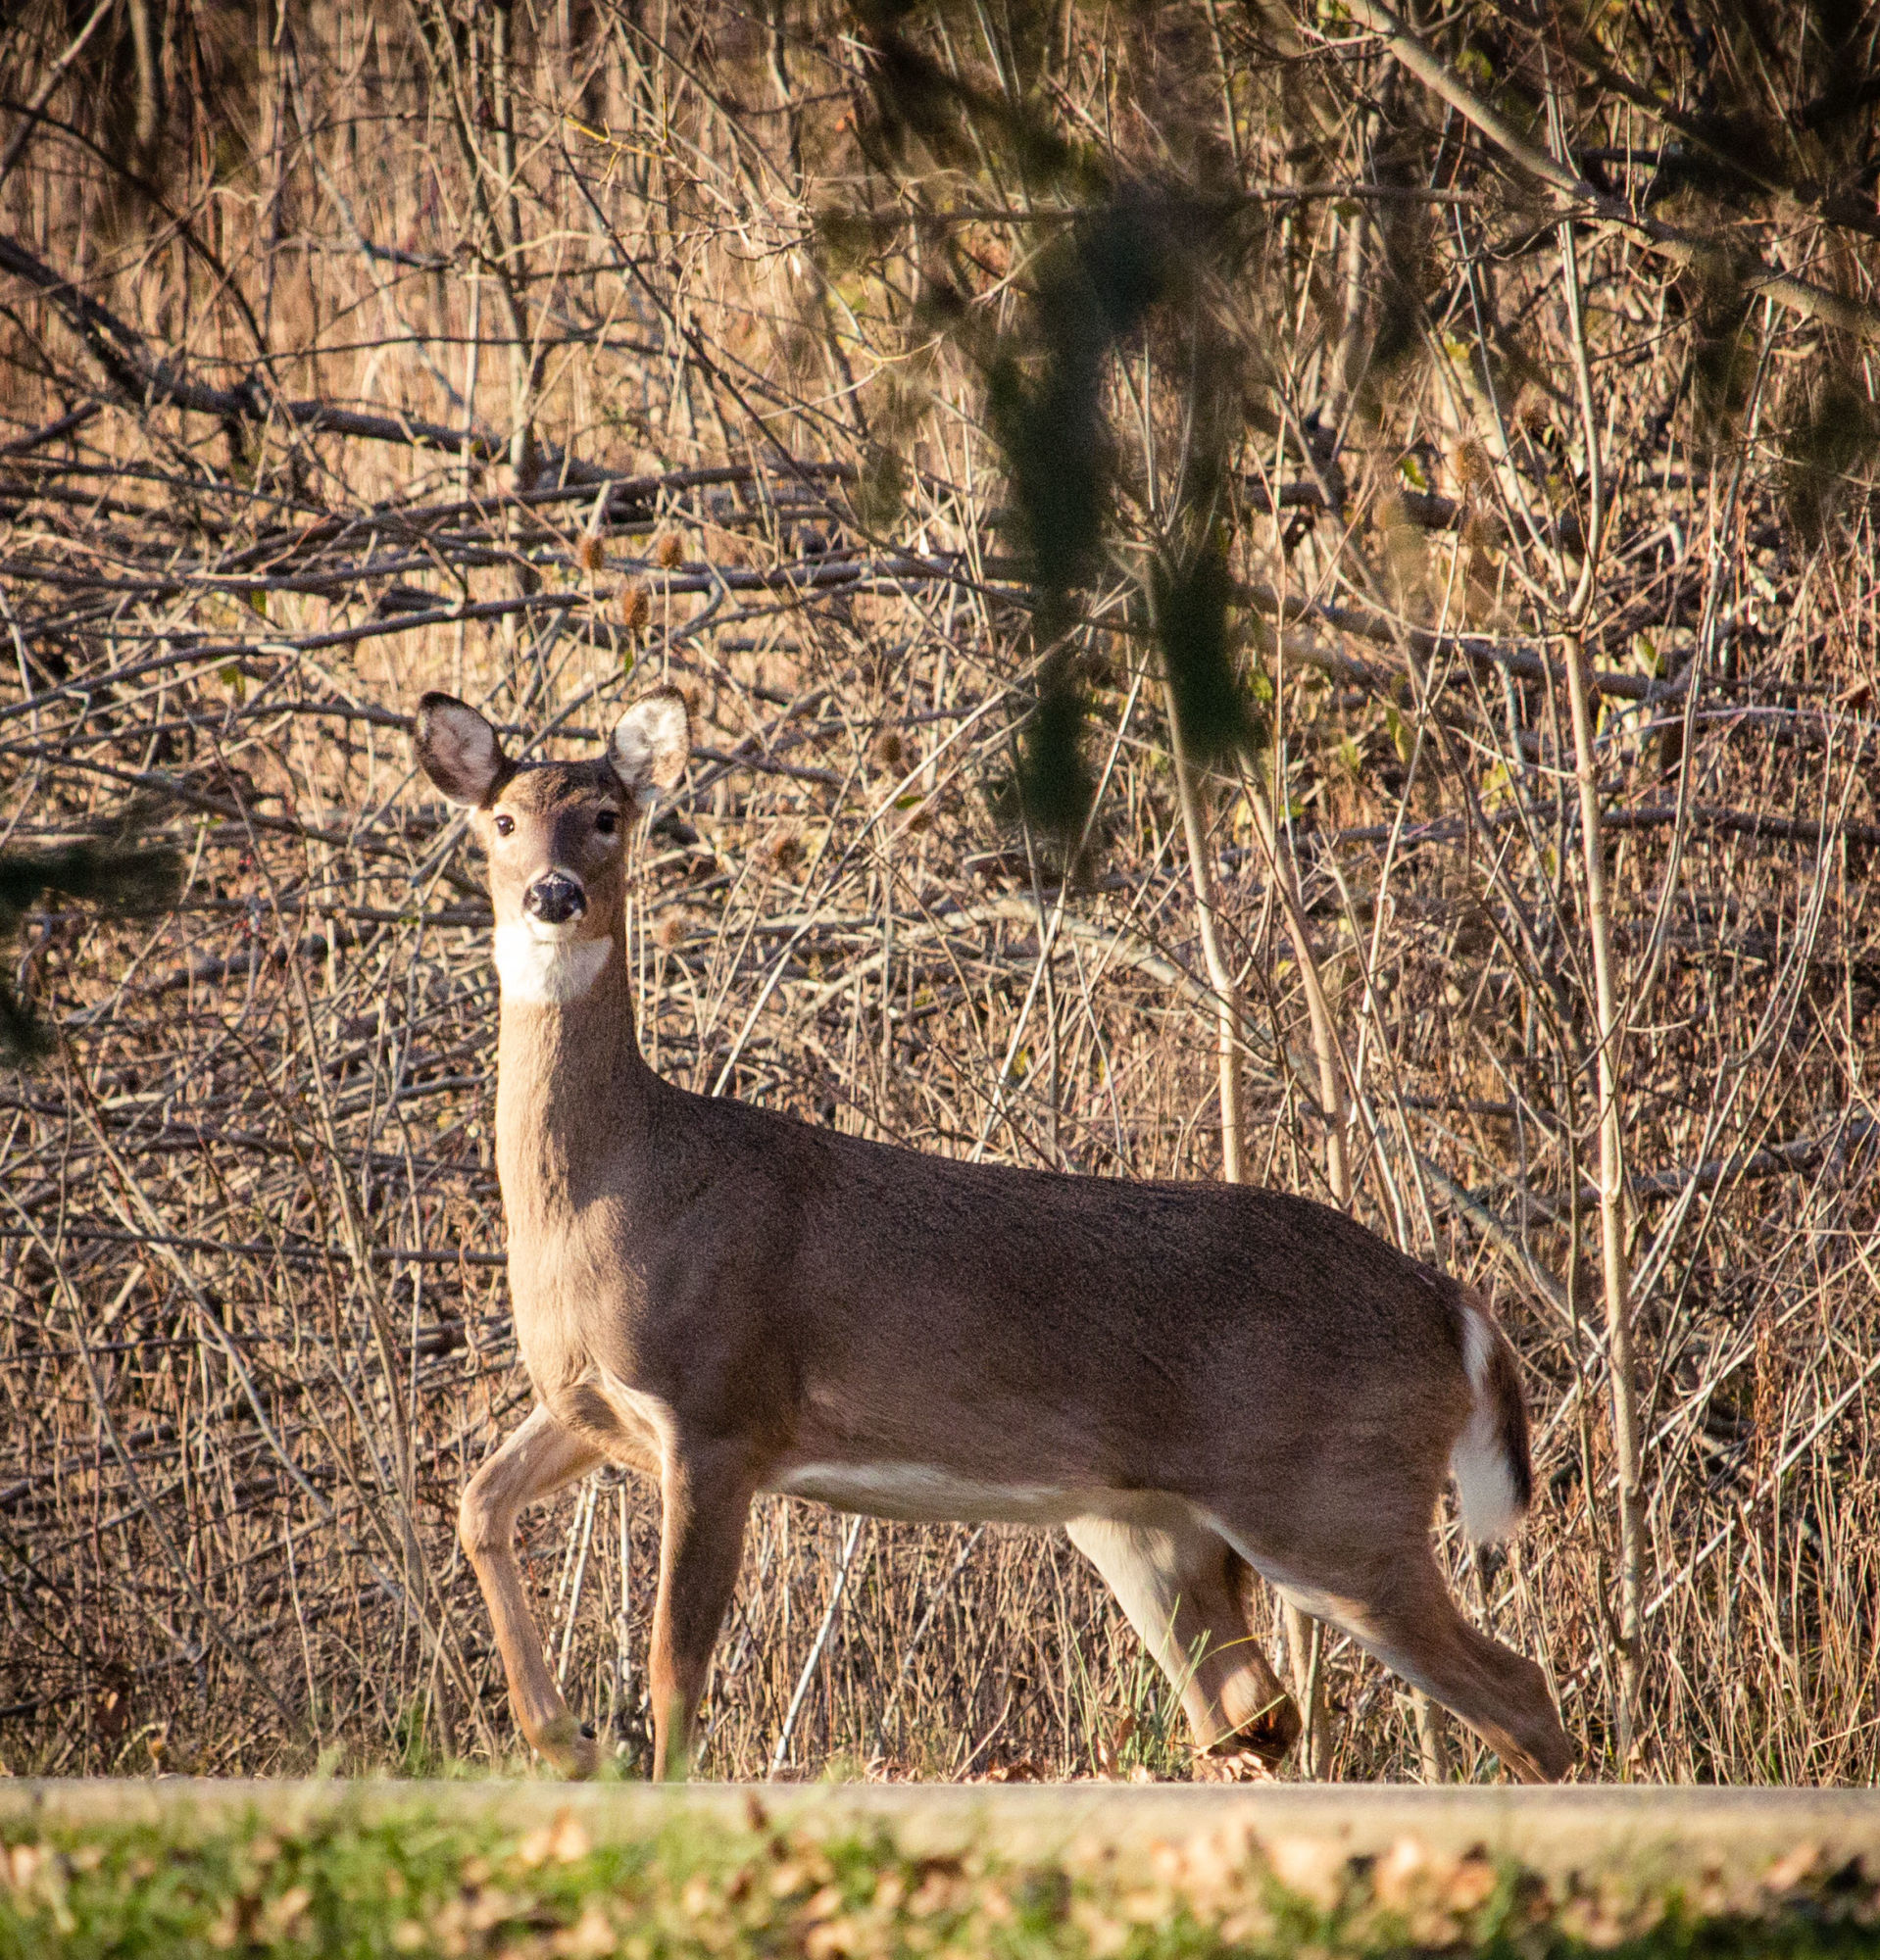 A deer pauses on a trail in the woods.